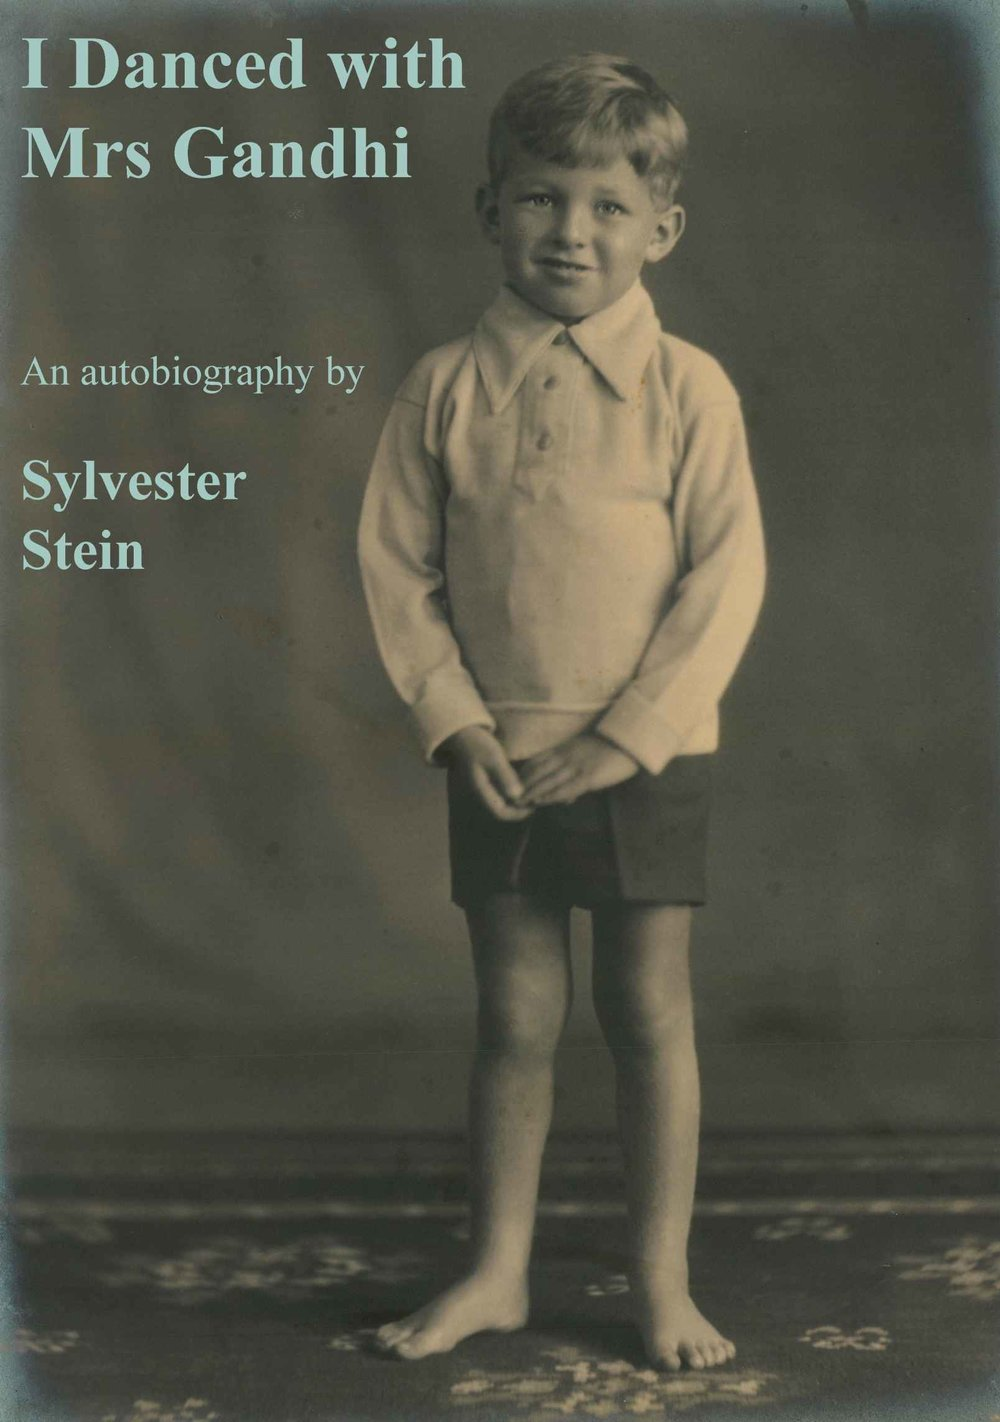 I Danced With Mrs Gandhi - Stein's zany autobiography written at the age of 87. Unconventional and full of his spirited take on life, he writes about his early childhood as the son of Lithuanian immigrants in Cape Town, to his days defying the South African regime while editor of Drum, and then to his time in the UK as a publisher and champion sprinter.